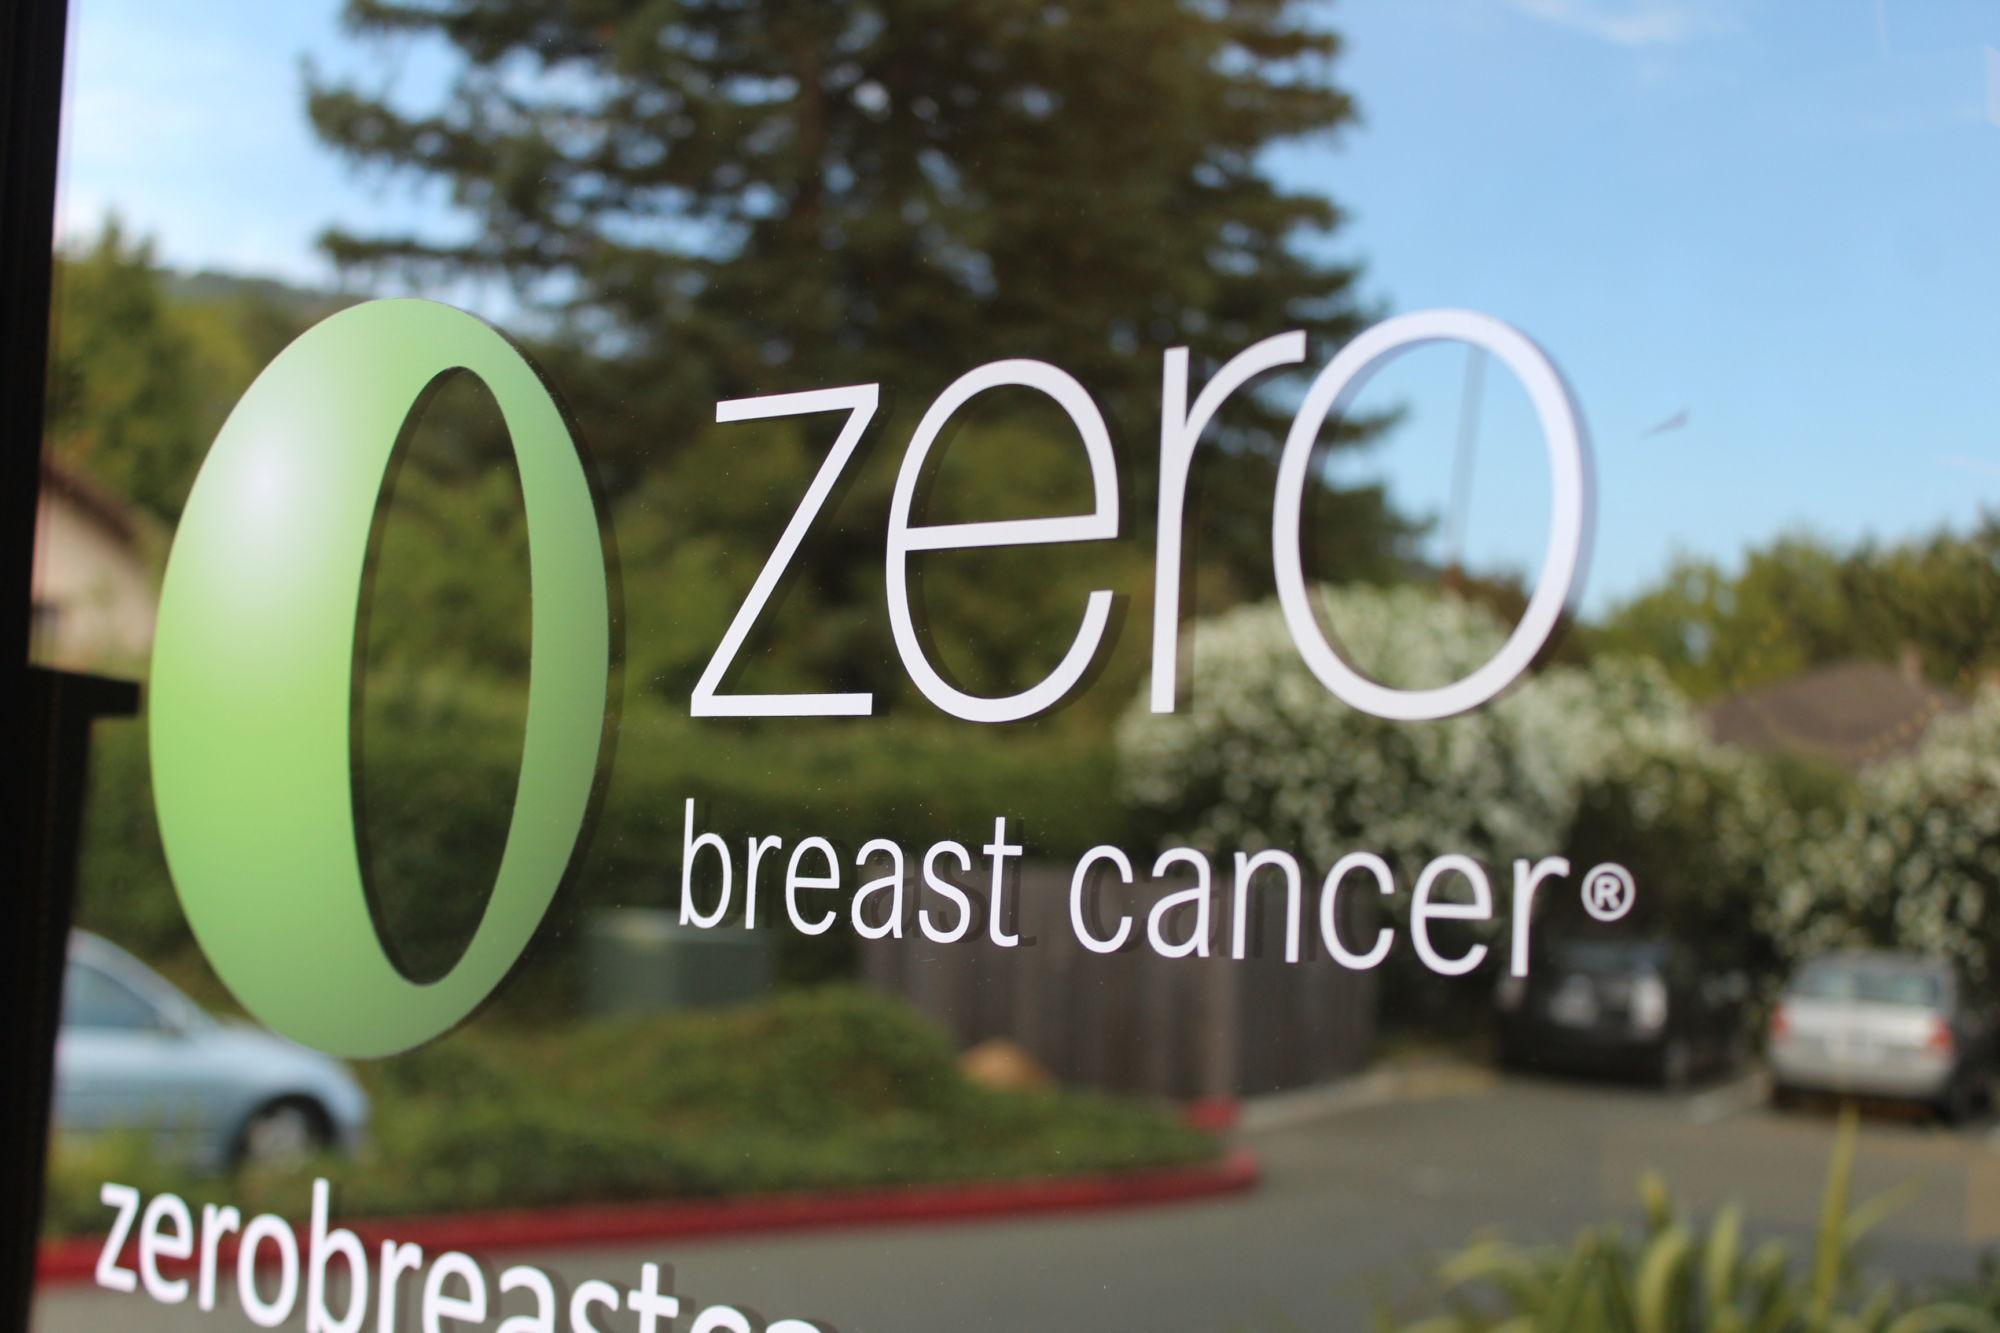 Confronting the cancer: breast cancer rates in Marin fall to their lowest level since the 90's